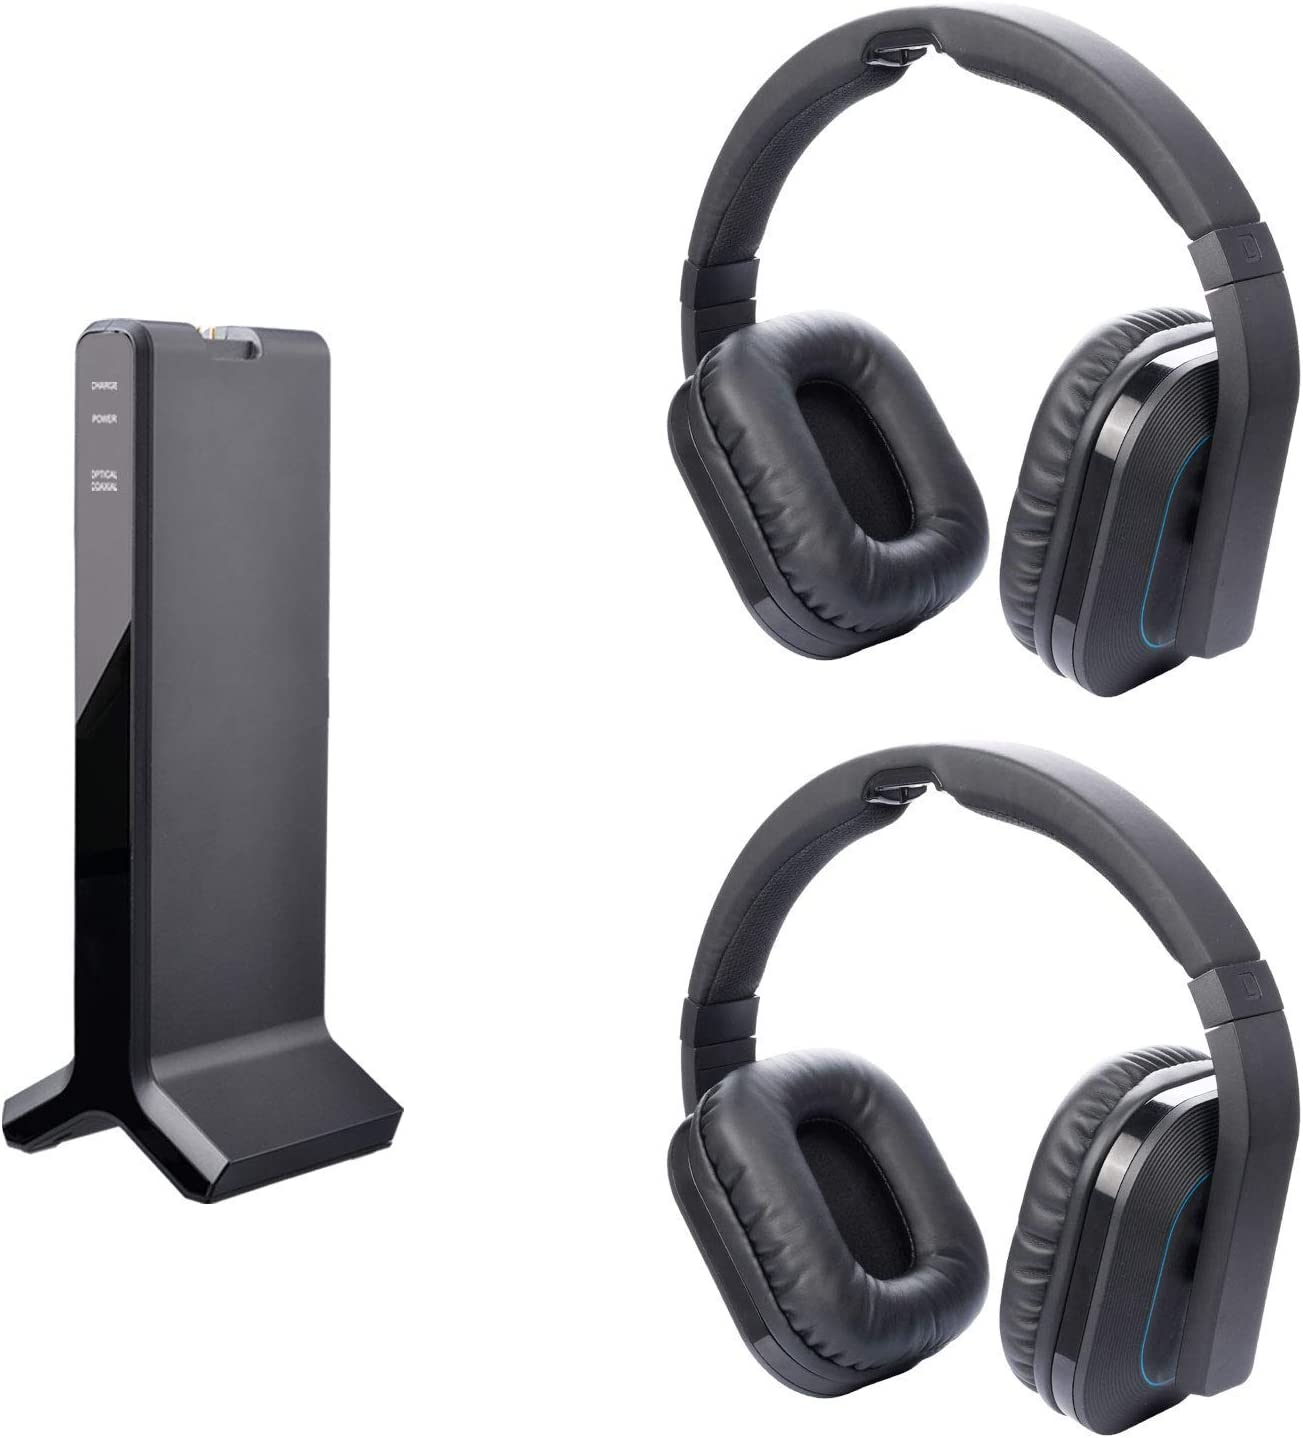 Digital 2.4G TV Headphones for Avantree HT280 Dual Link. Share TV Videos with Family or Friends, No Disturb to Family's Rest or Working, High Volume Headset Ideal for Seniors & Hearing Impaired